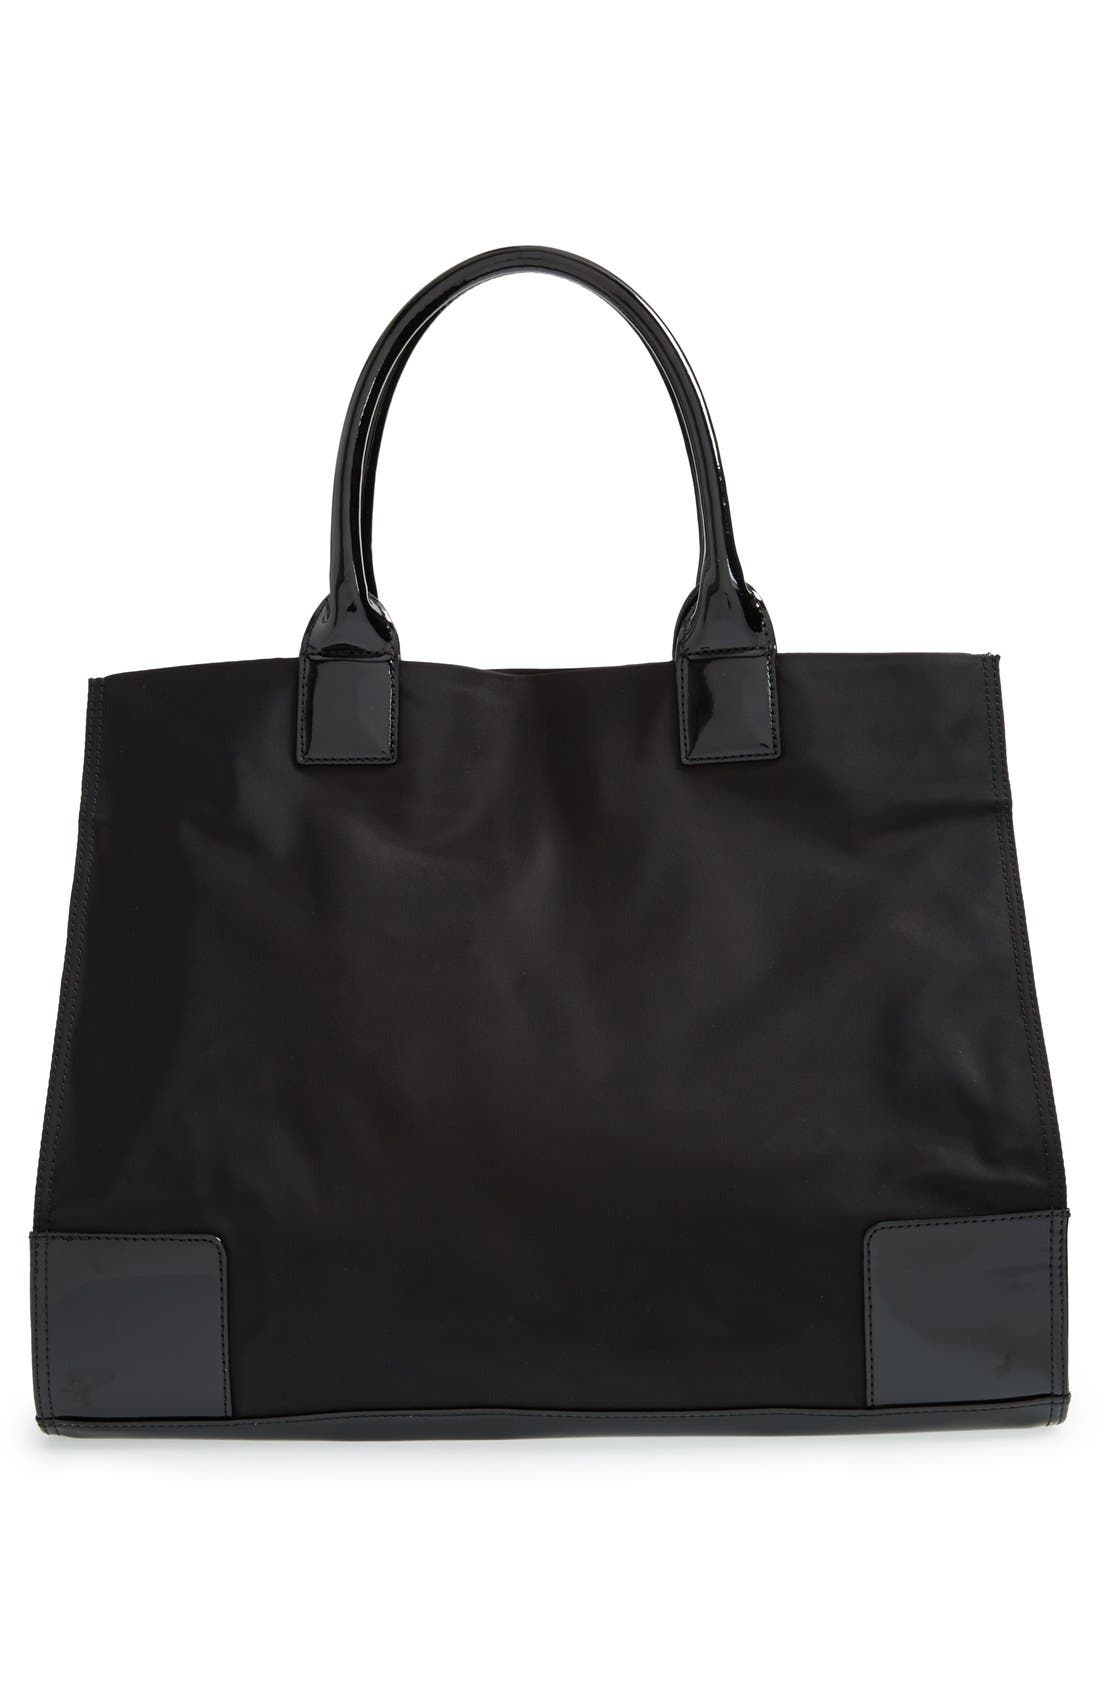 'Ella' Nylon Tote,                             Alternate thumbnail 9, color,                             BLACK/ BLACK